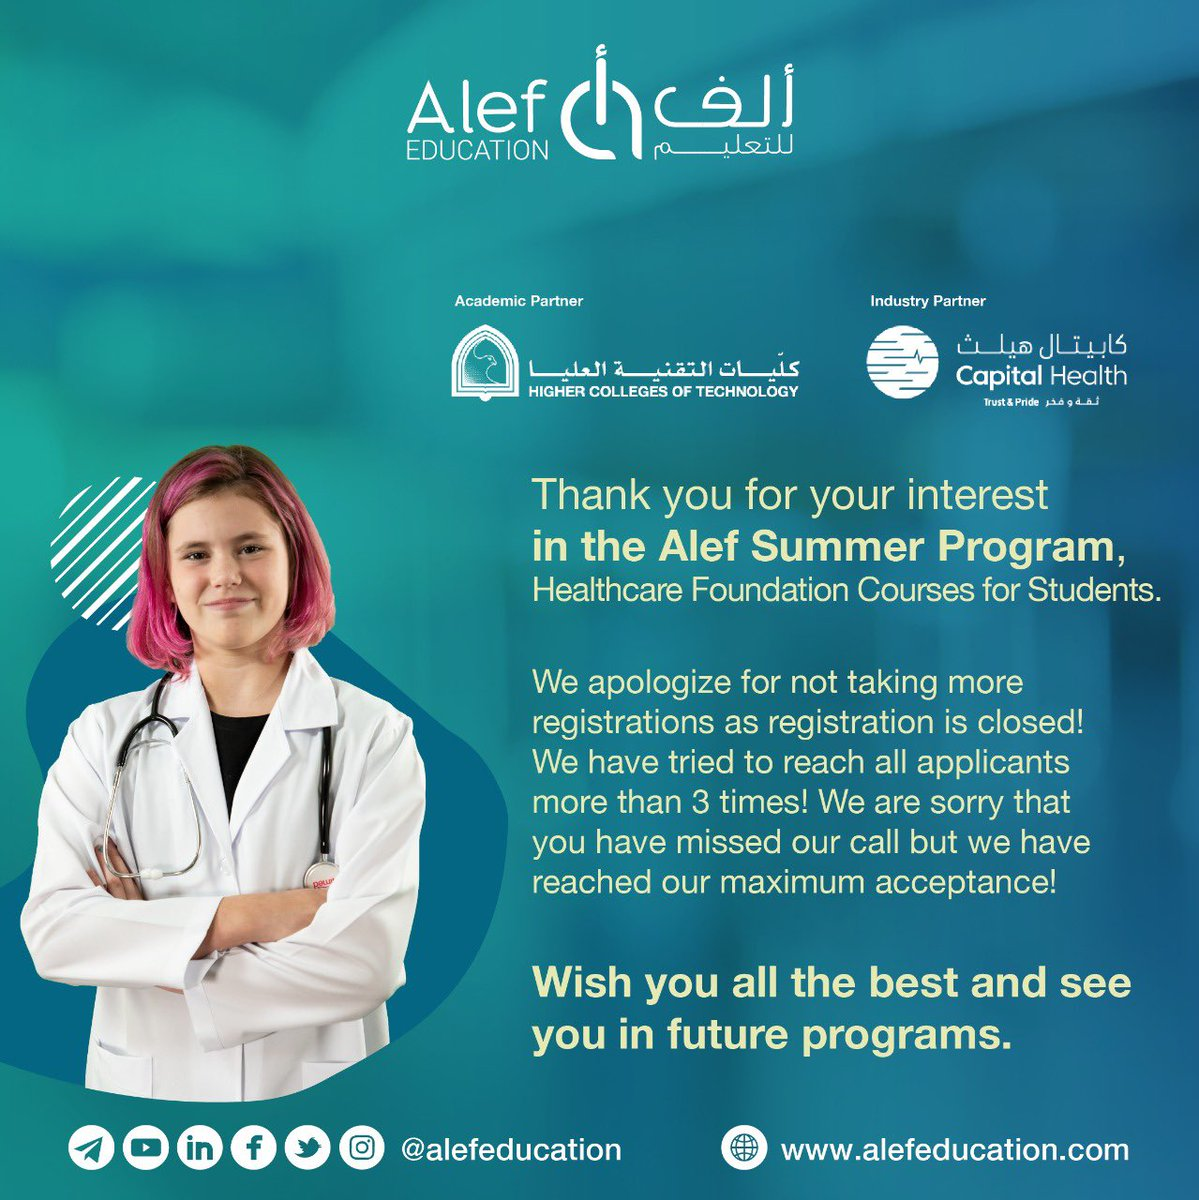 Thank you for your interest in the Alef Summer Program, Healthcare Foundation Courses for Students.  Contact us: 600552533 https://t.co/Zv15sL2TG5